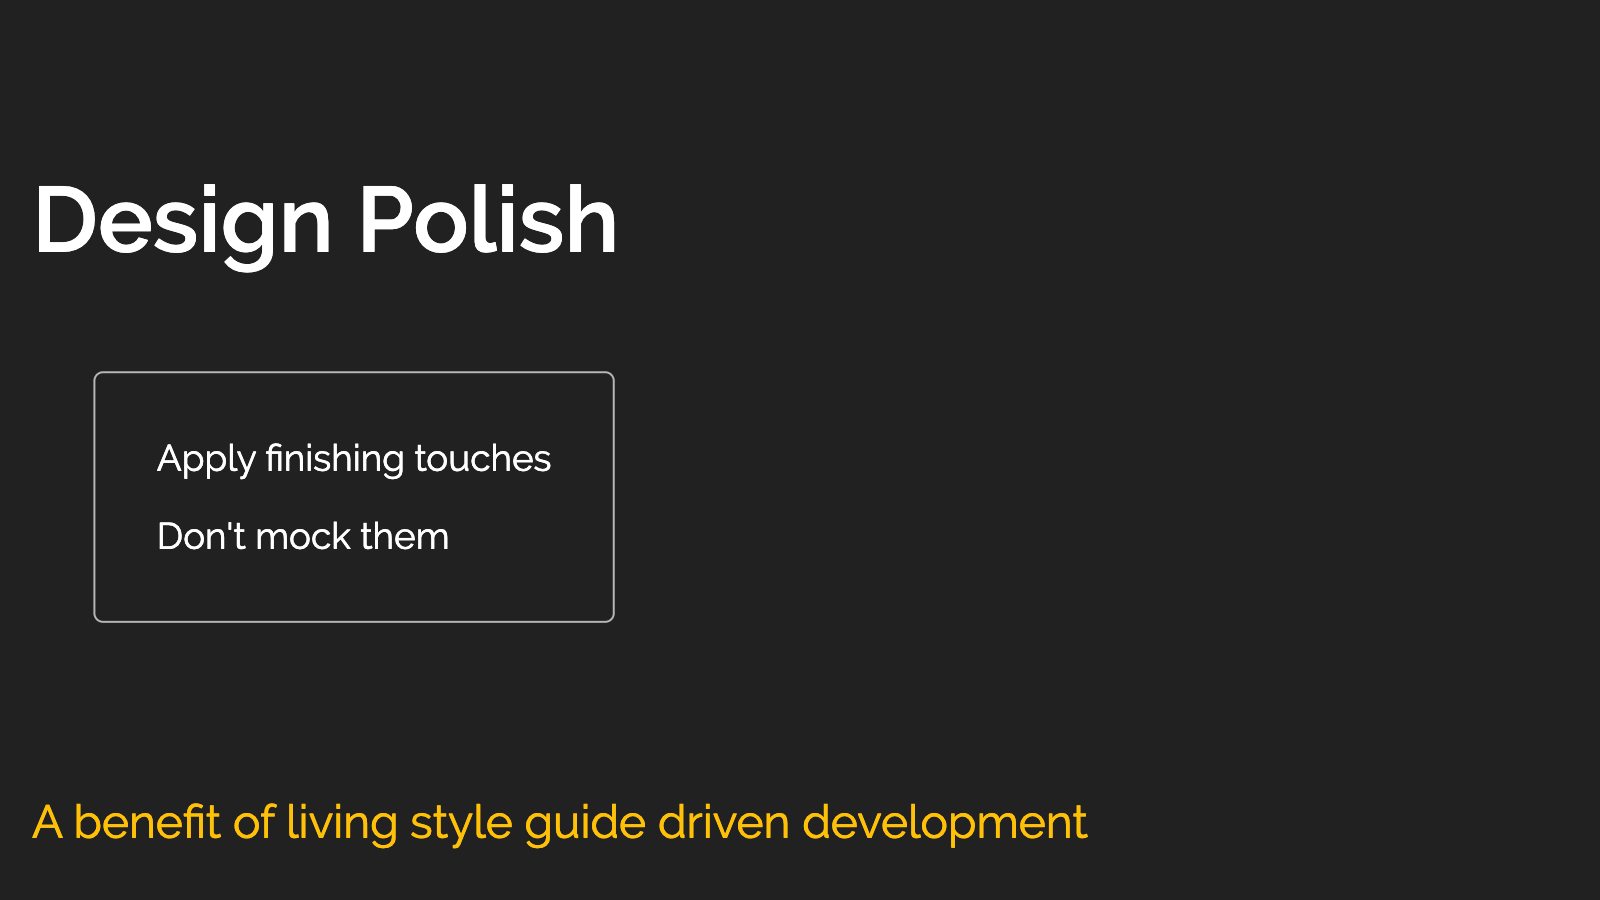 Slide content, Design polish, a benefit of living style guide driven development